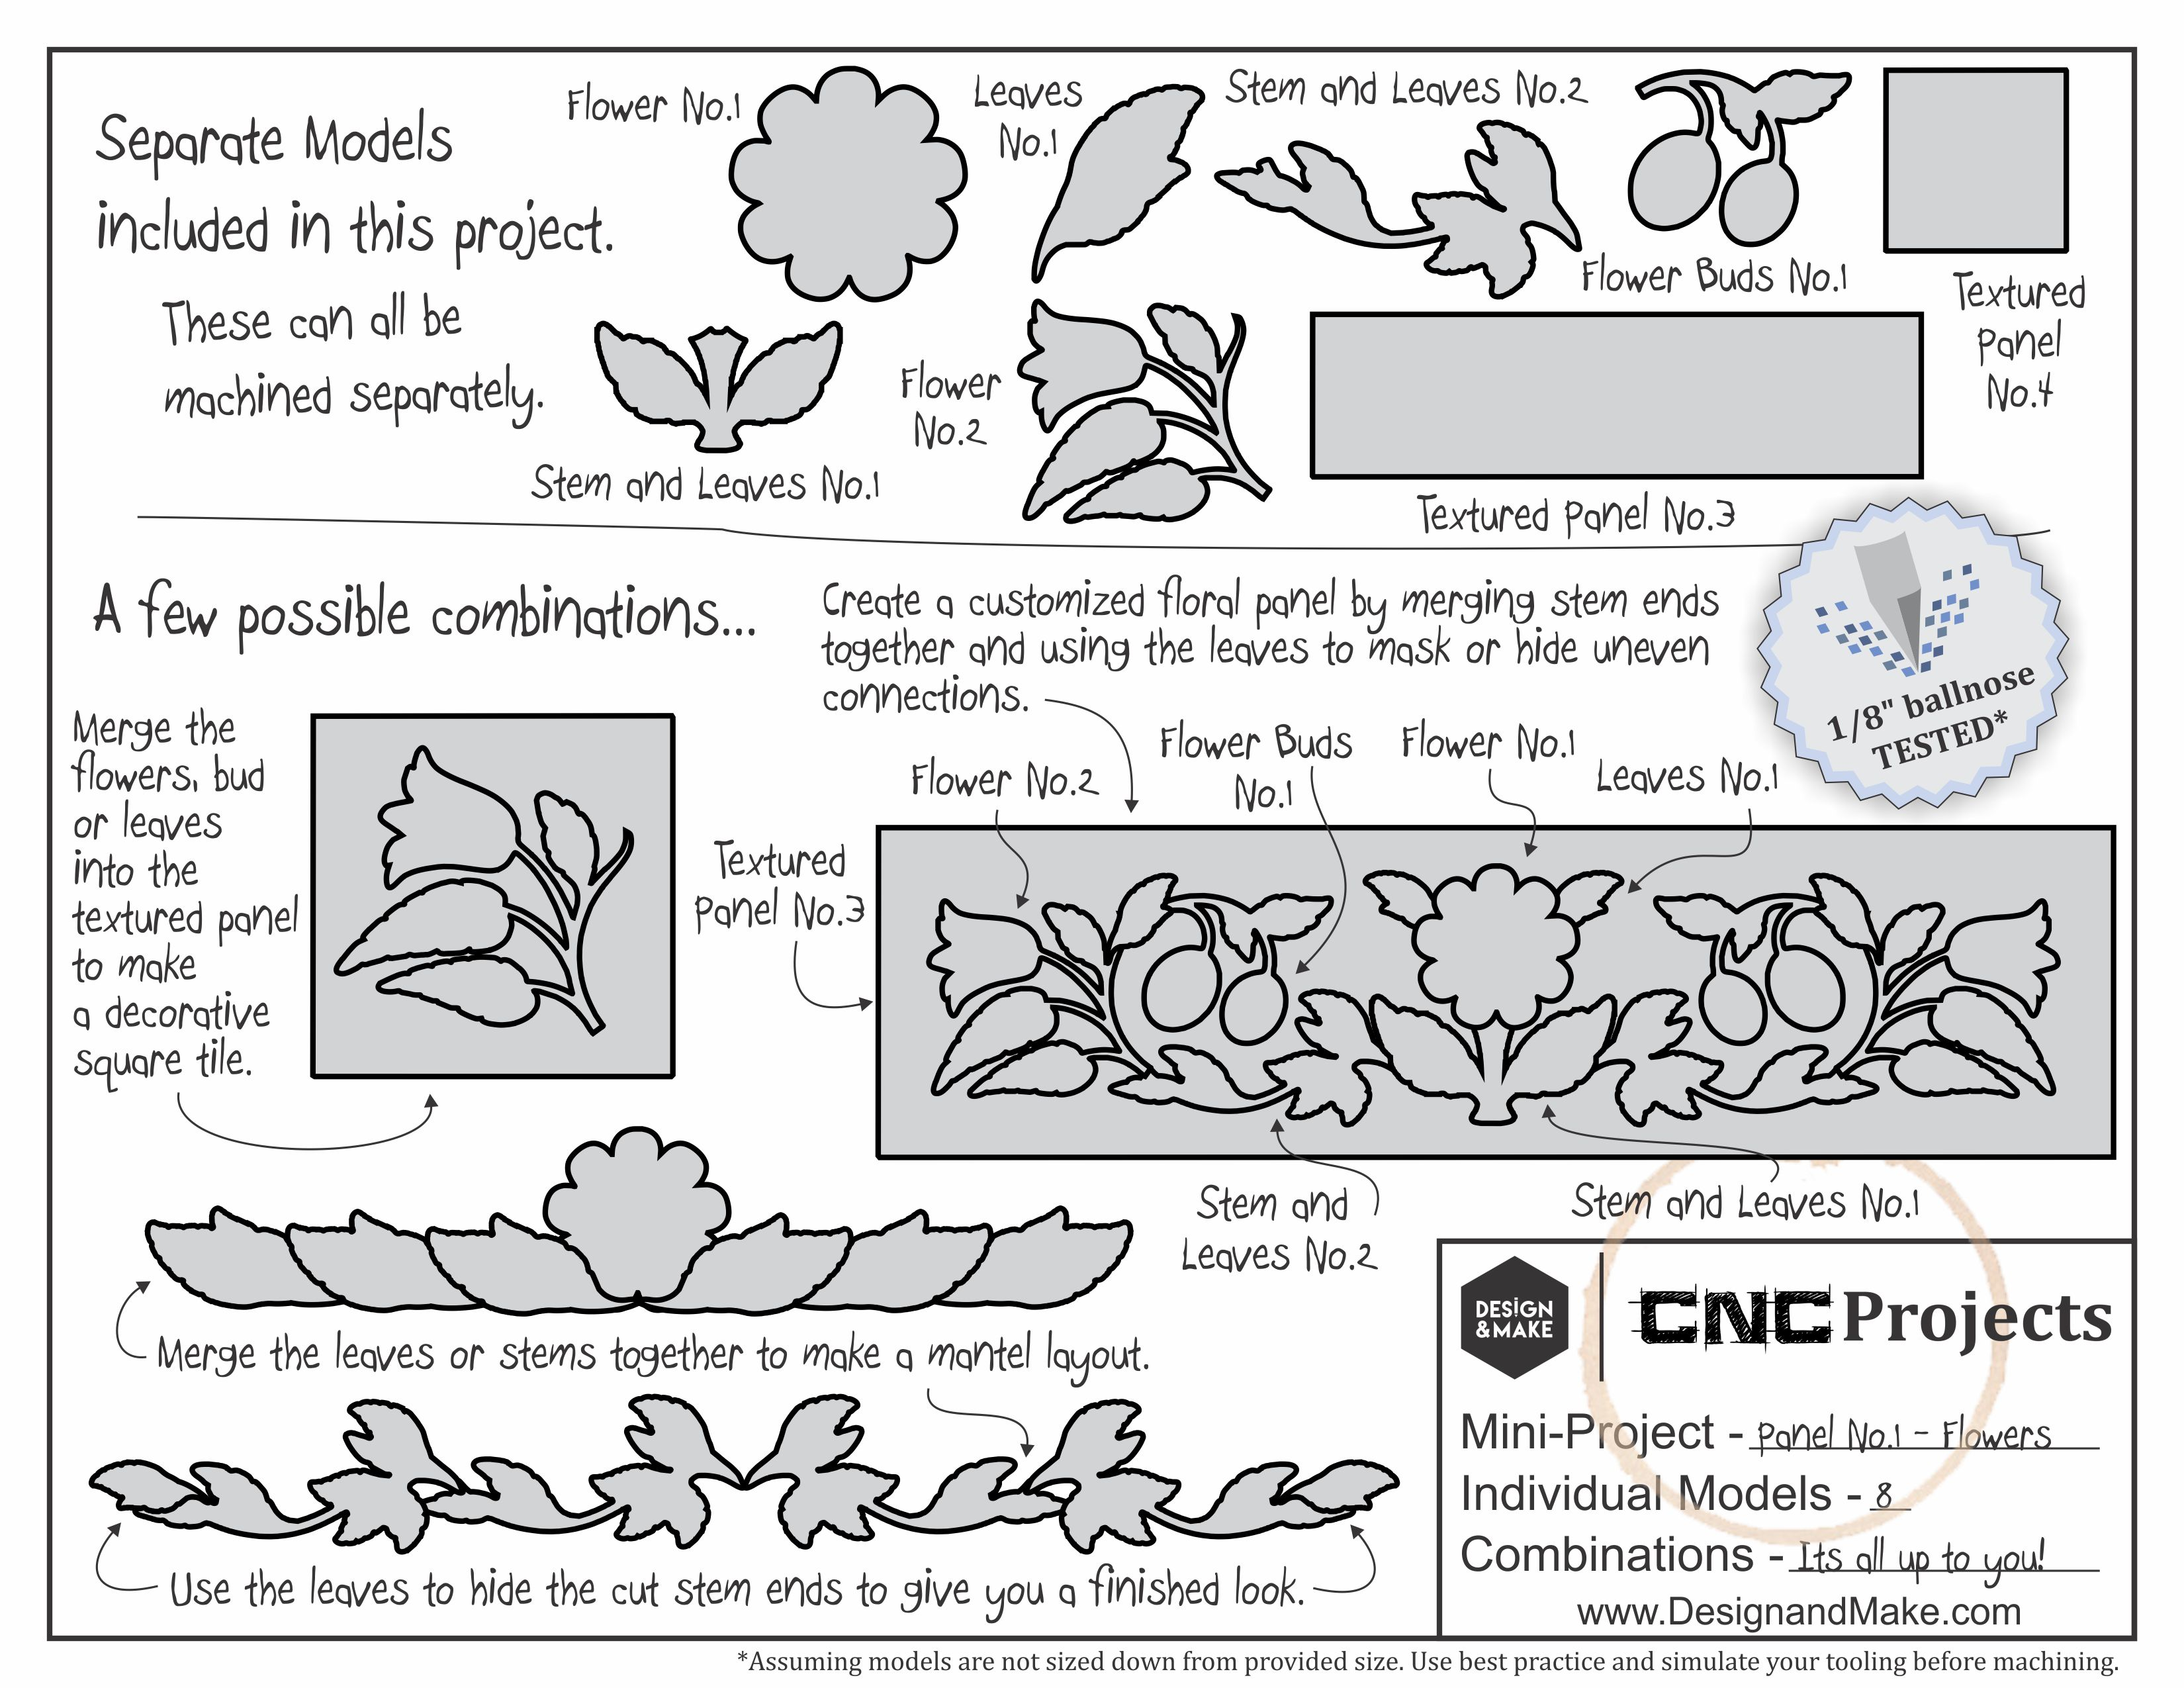 Panel No.1 - Flowers - Project Sheet